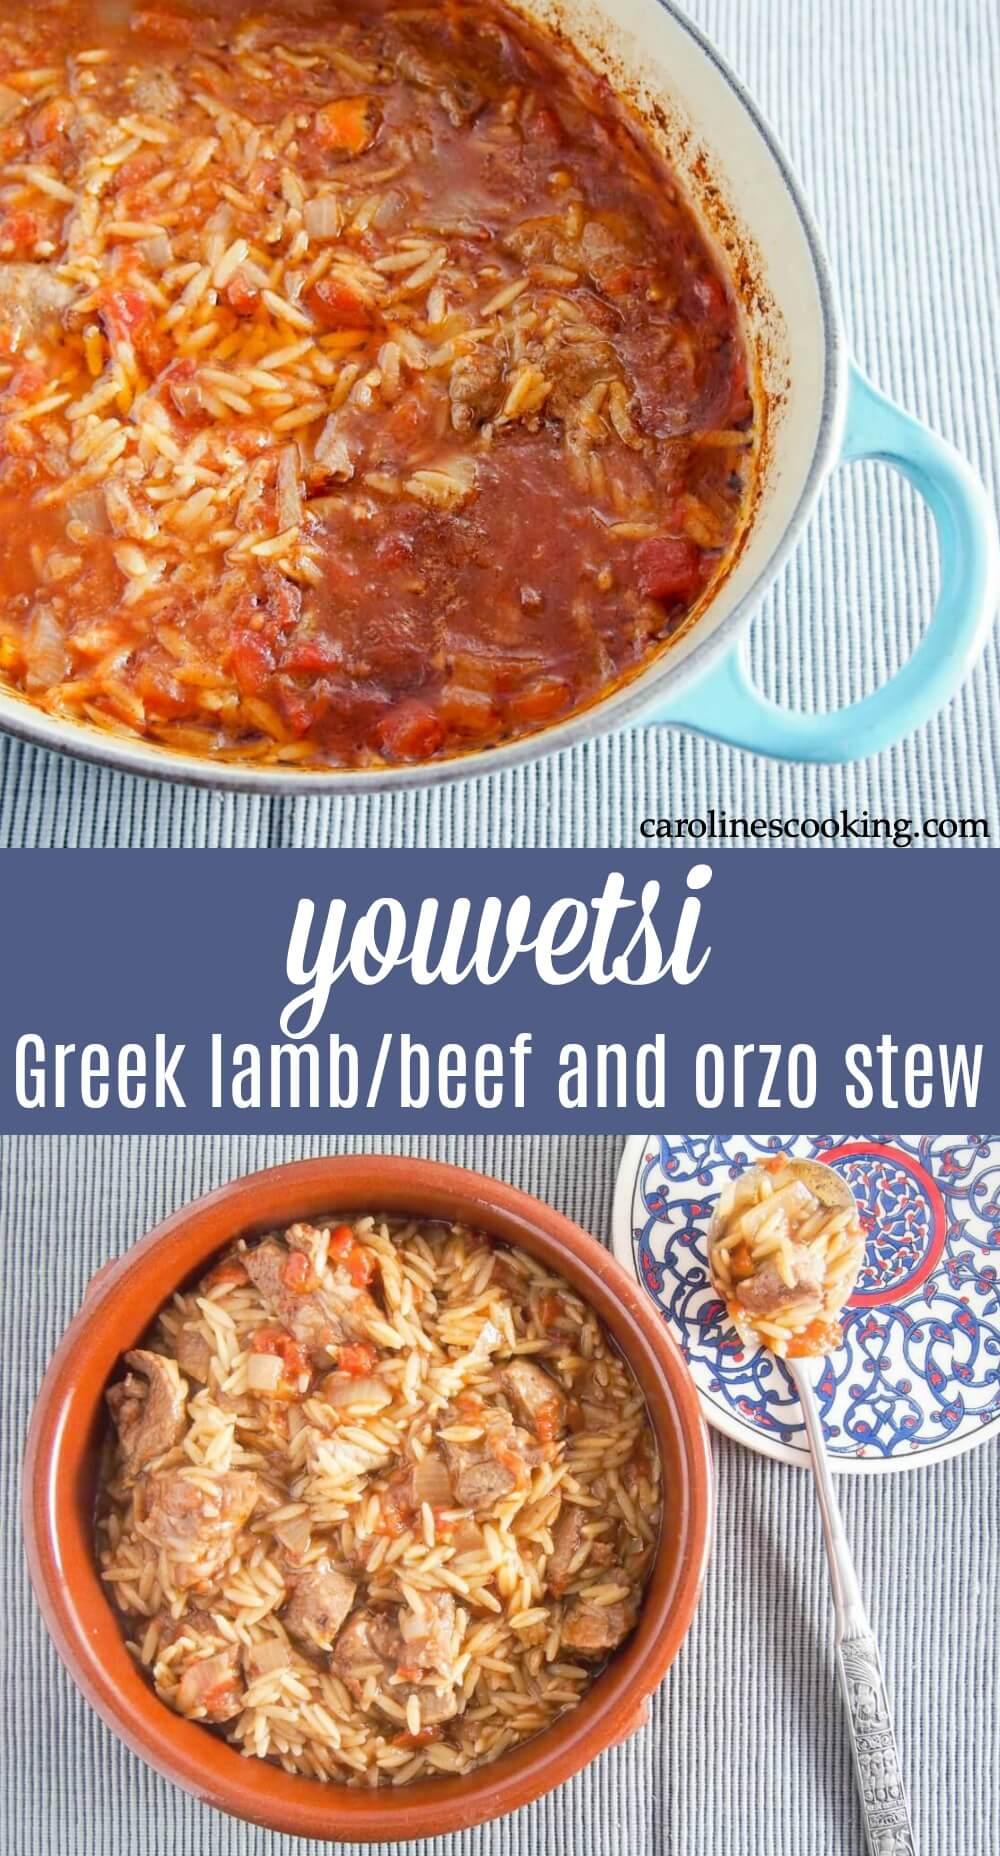 Youvetsi is a delicious Greek stew made with beef or lamb and orzo cooked in a tasty tomato-based sauce. It's flavorful, comforting and easy to make too with easy to find ingredients. Great comfort food. #stew #greekfood